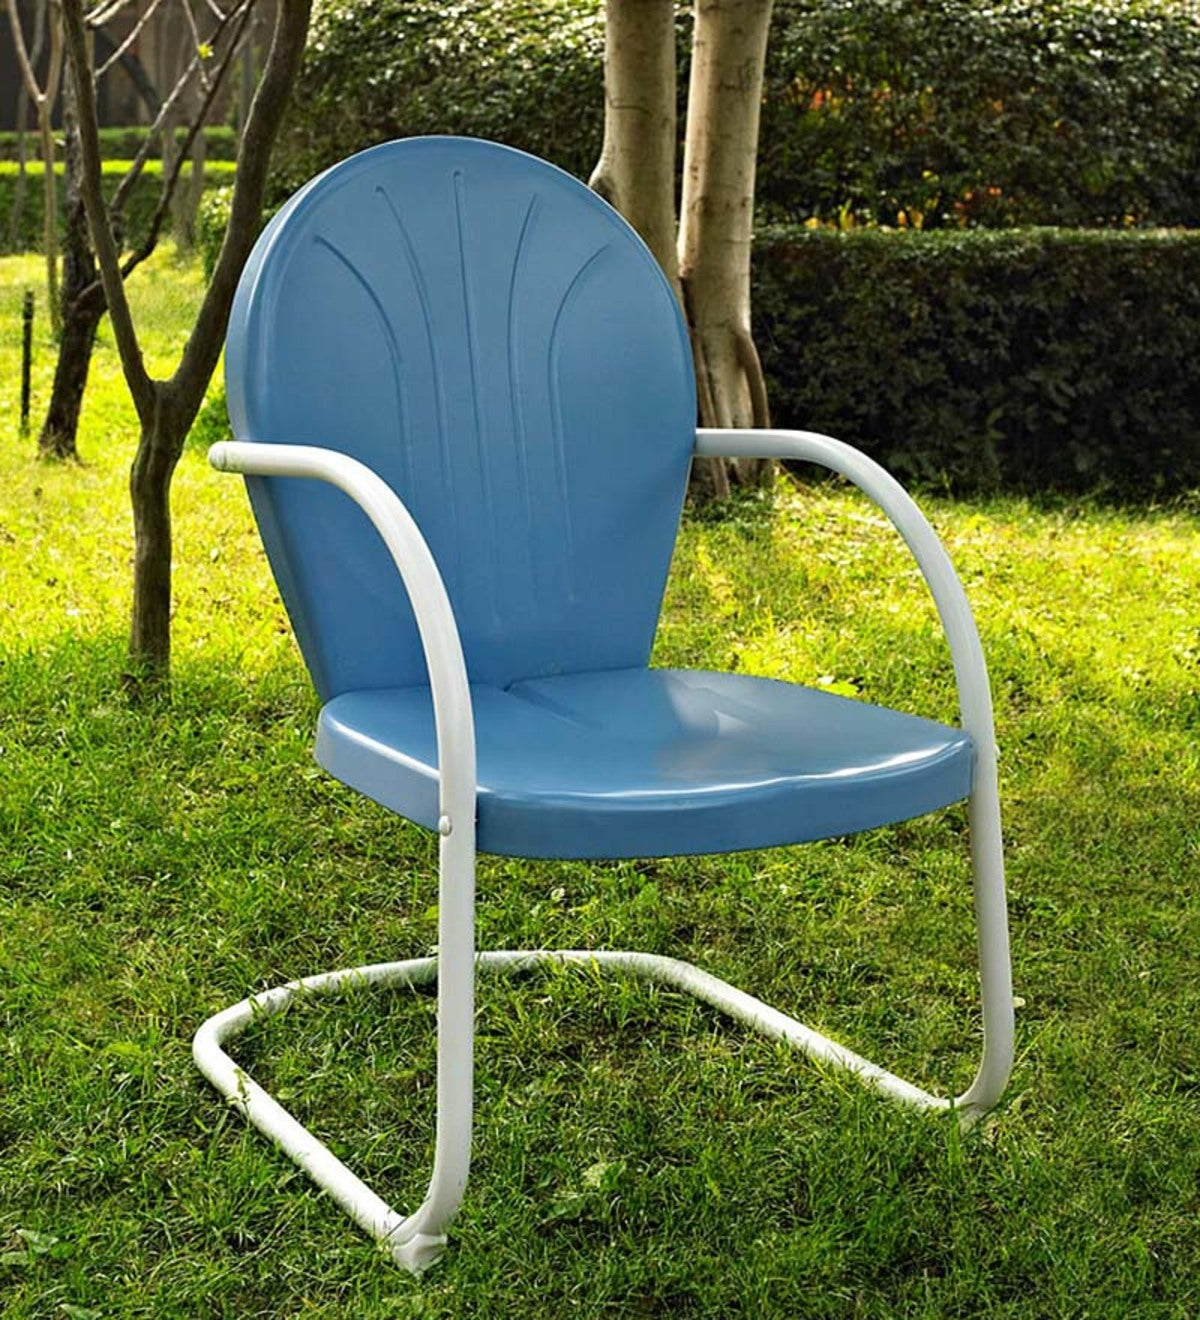 old metal chairs modern nursing chair vintage lawn visual hunt 25 best ideas about on pinterest